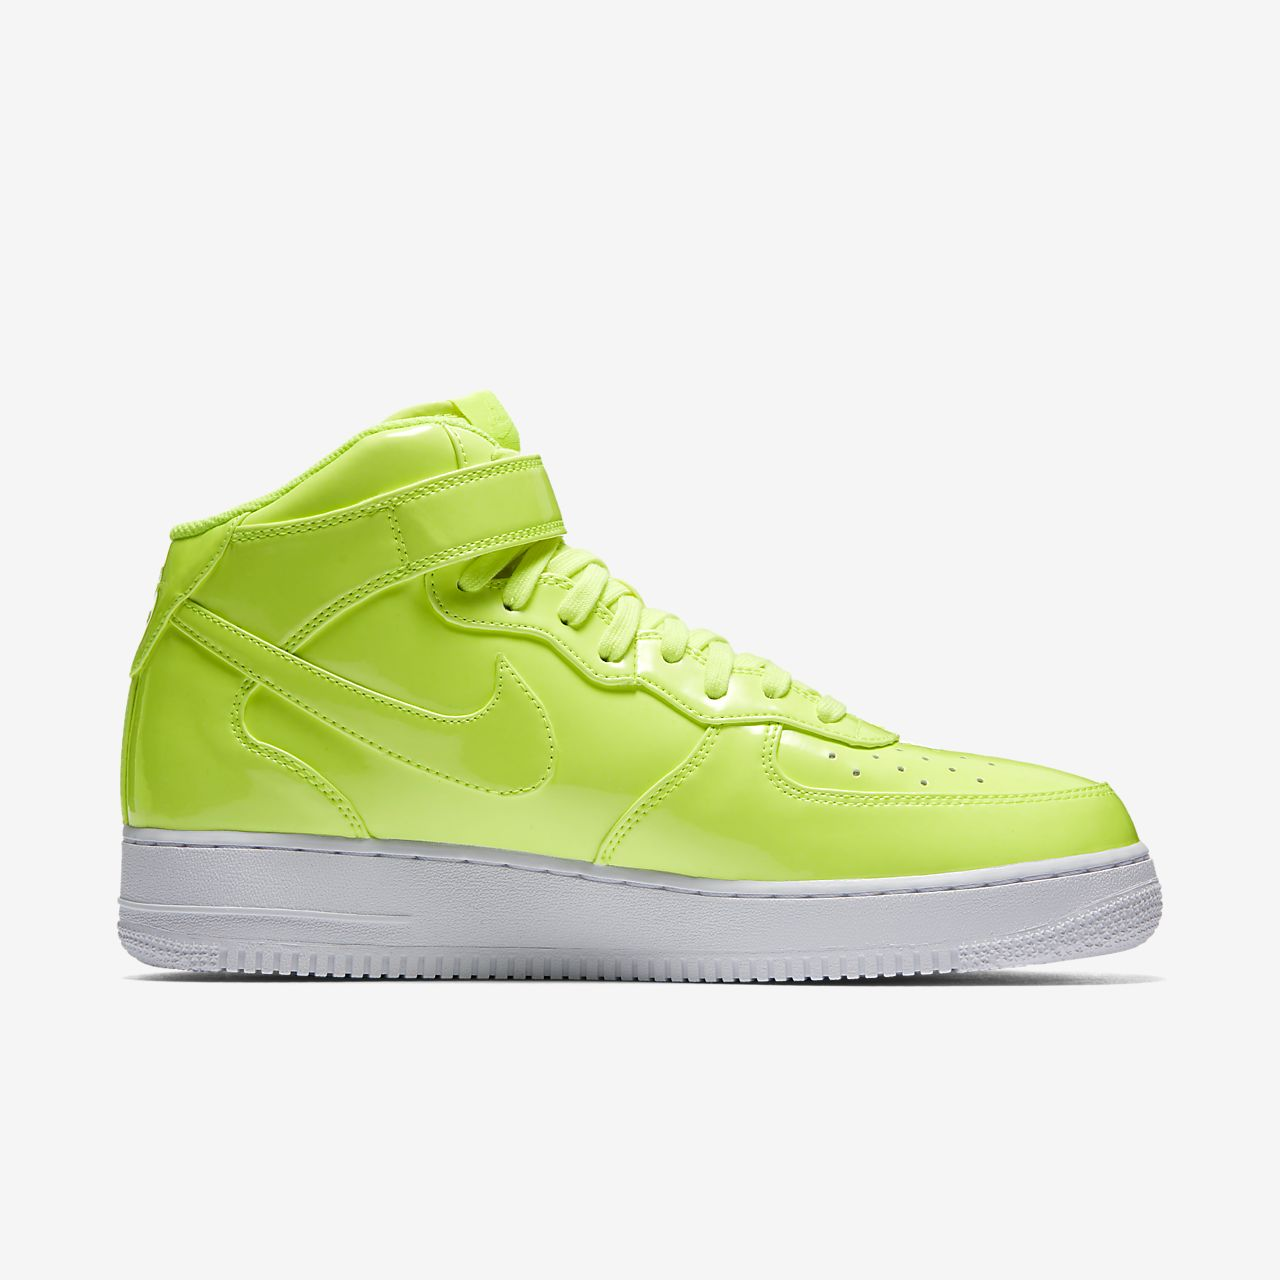 Nike Air Force Uv 1 Mid '07 Lv8 Uv Force Hombres Zapato 9ebf1e